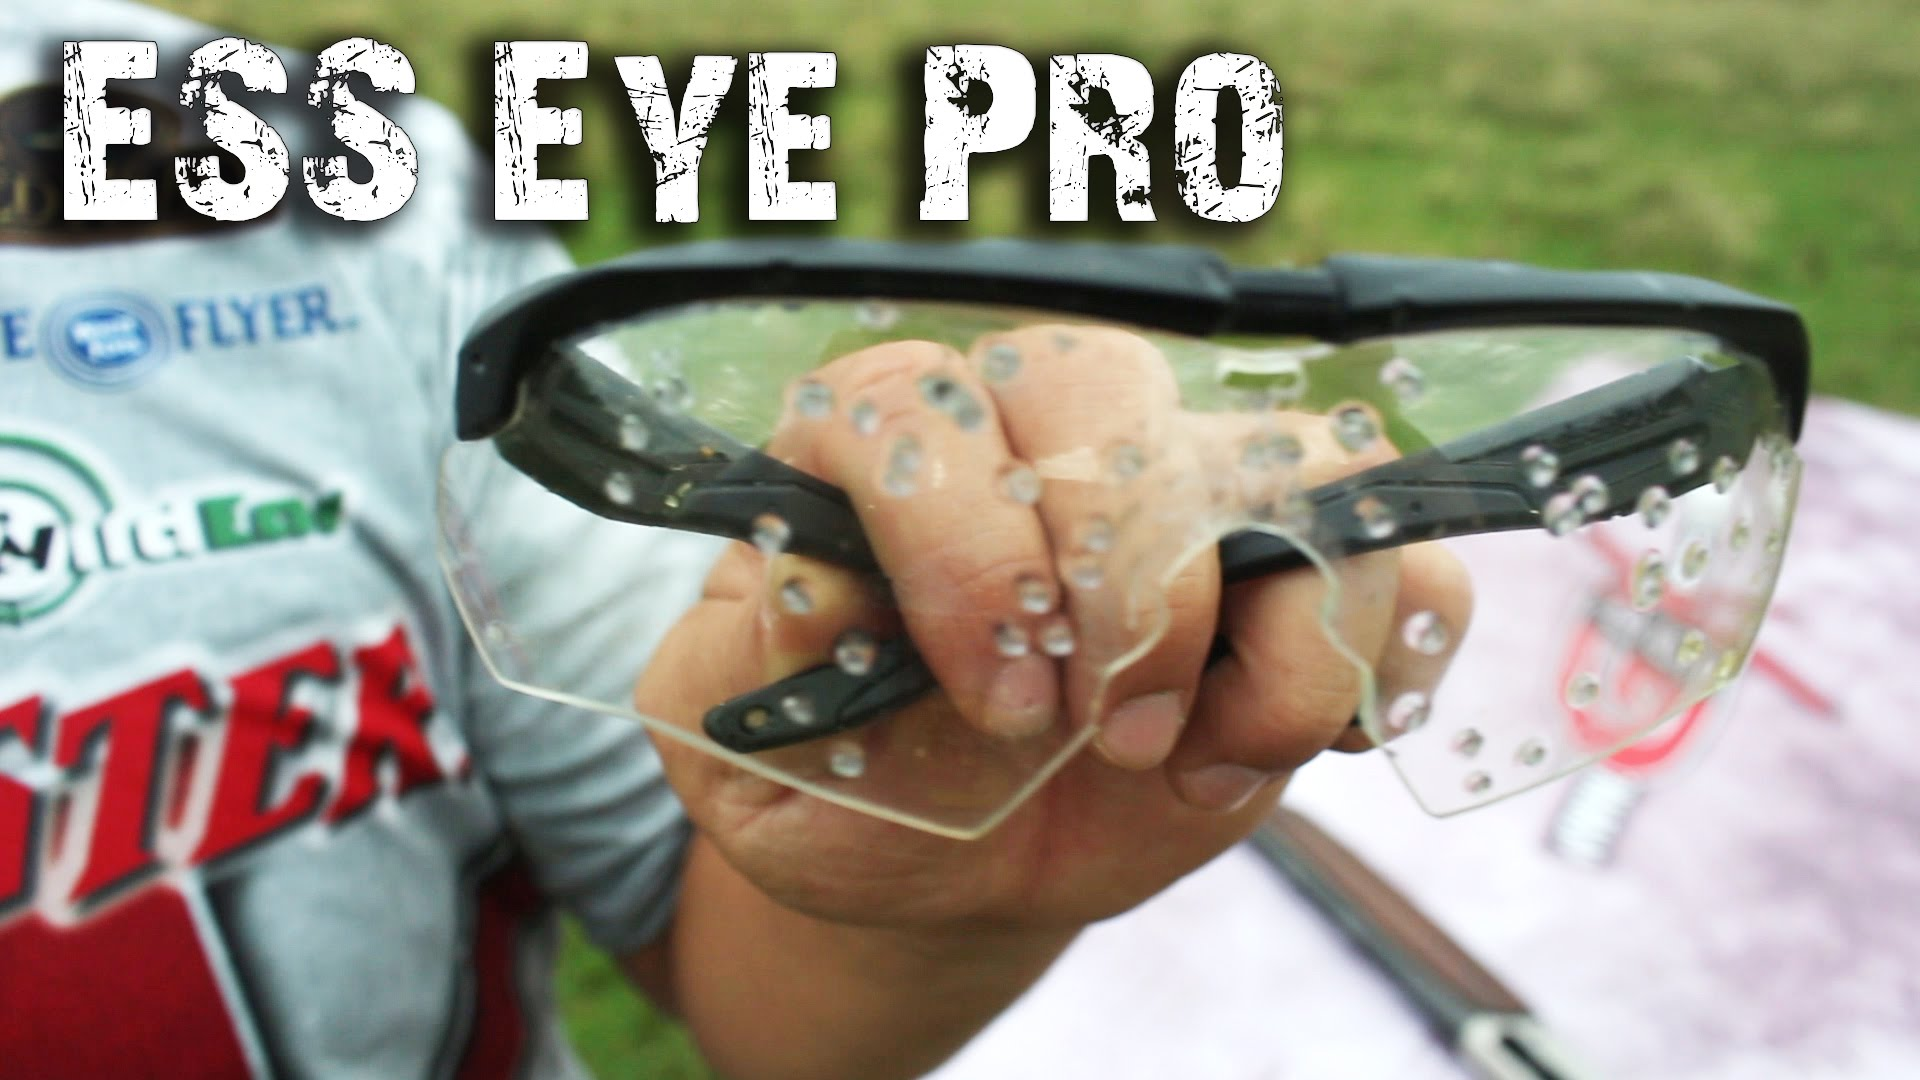 The Best Eye Protection for Shooting - ESS (Eye Safety Systems)